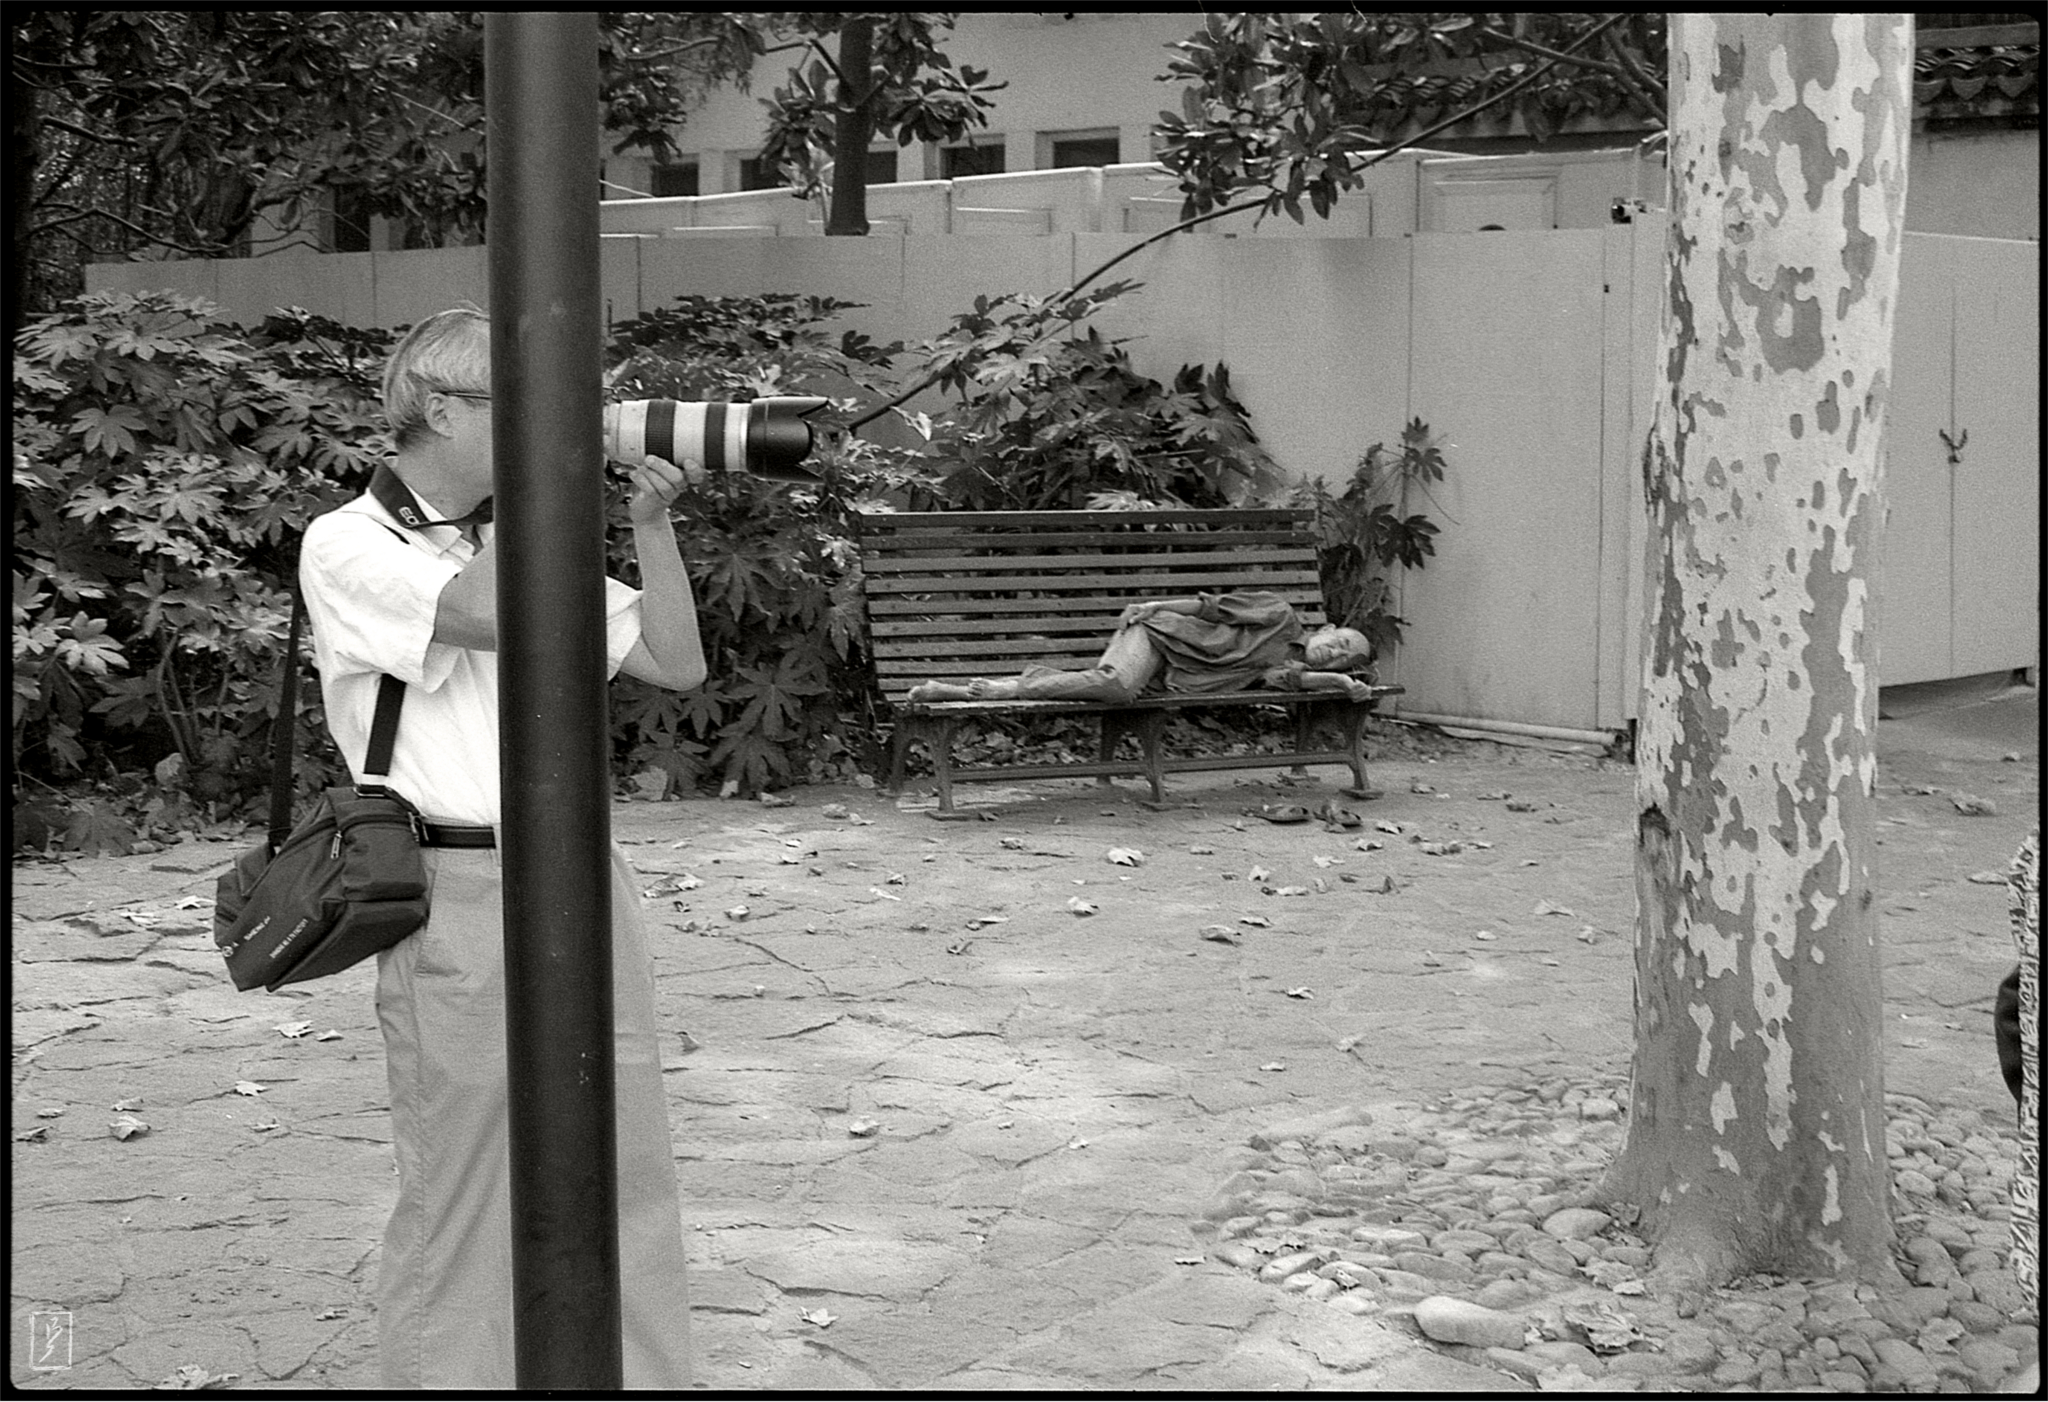 Lu Xun park (鲁迅公园): Photographer sporting a Canon and someone taking a nap on a bench.